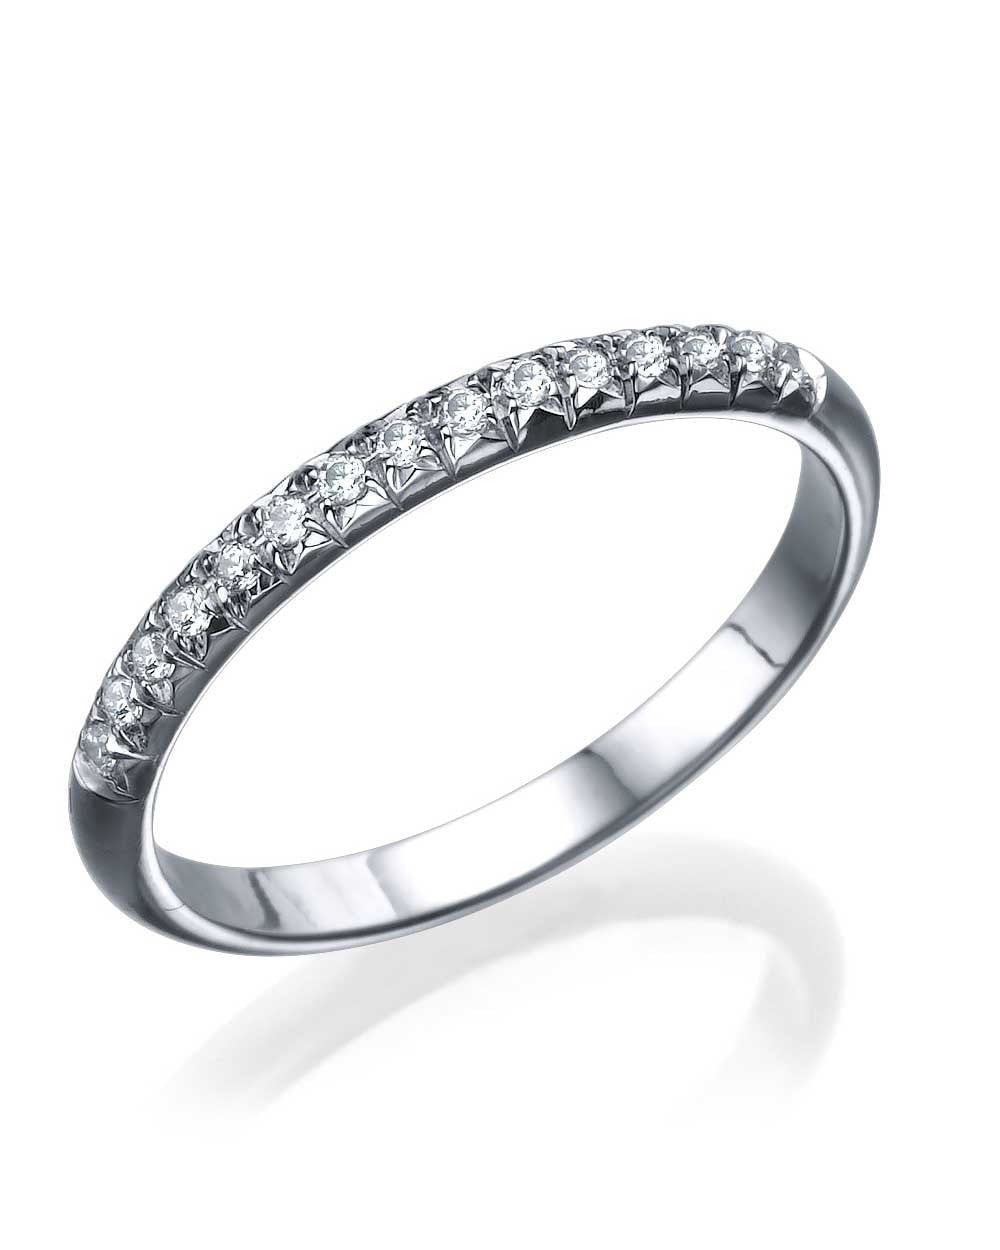 Wedding Rings Platinum Wedding Bands for Women - 0.15ct Diamond  Semi-Eternity Ring c07e602ea3